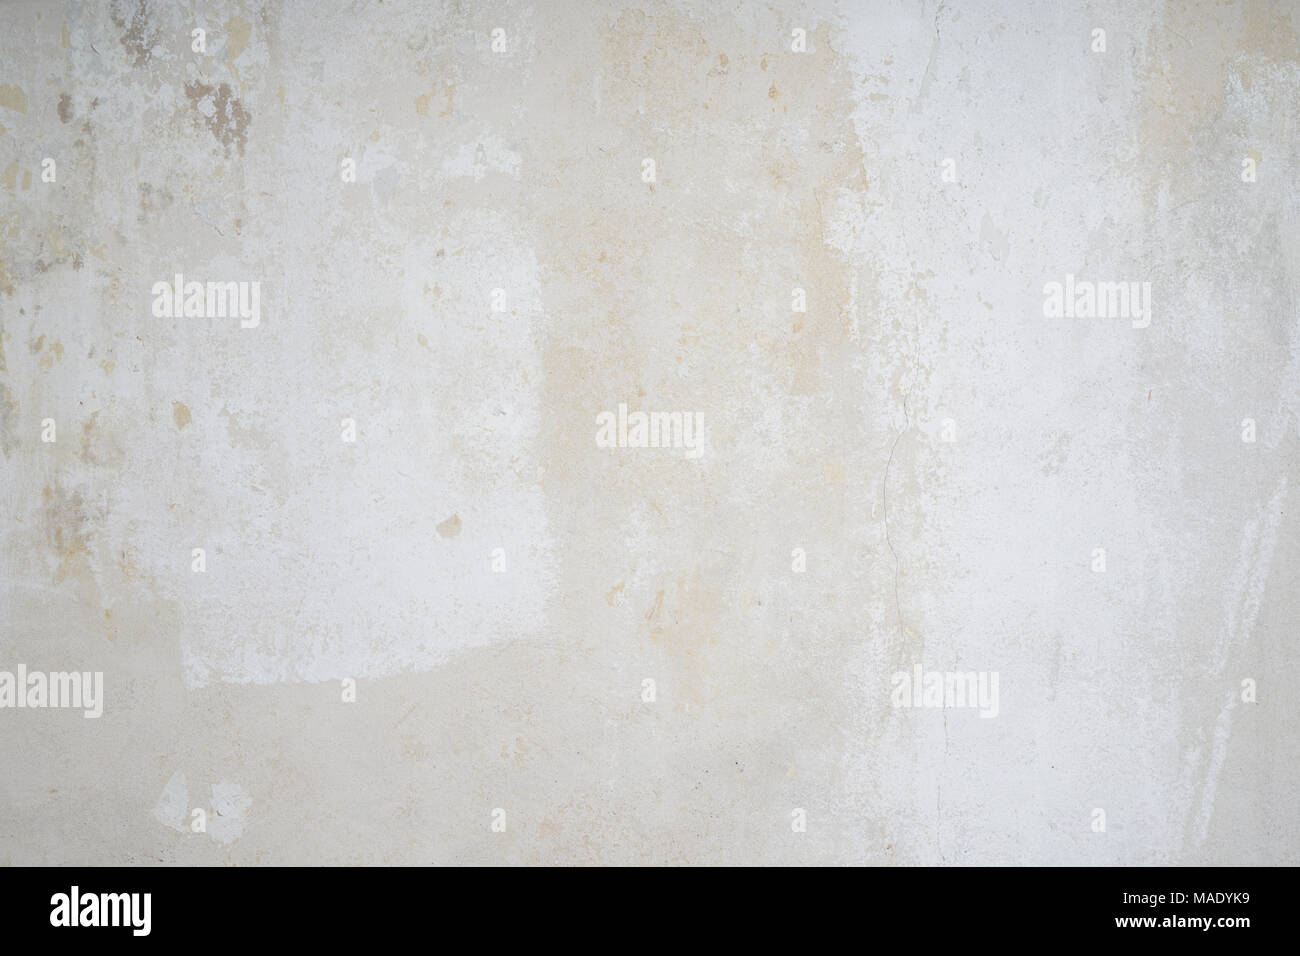 bare interior wall shabby grunge background texture - Stock Image